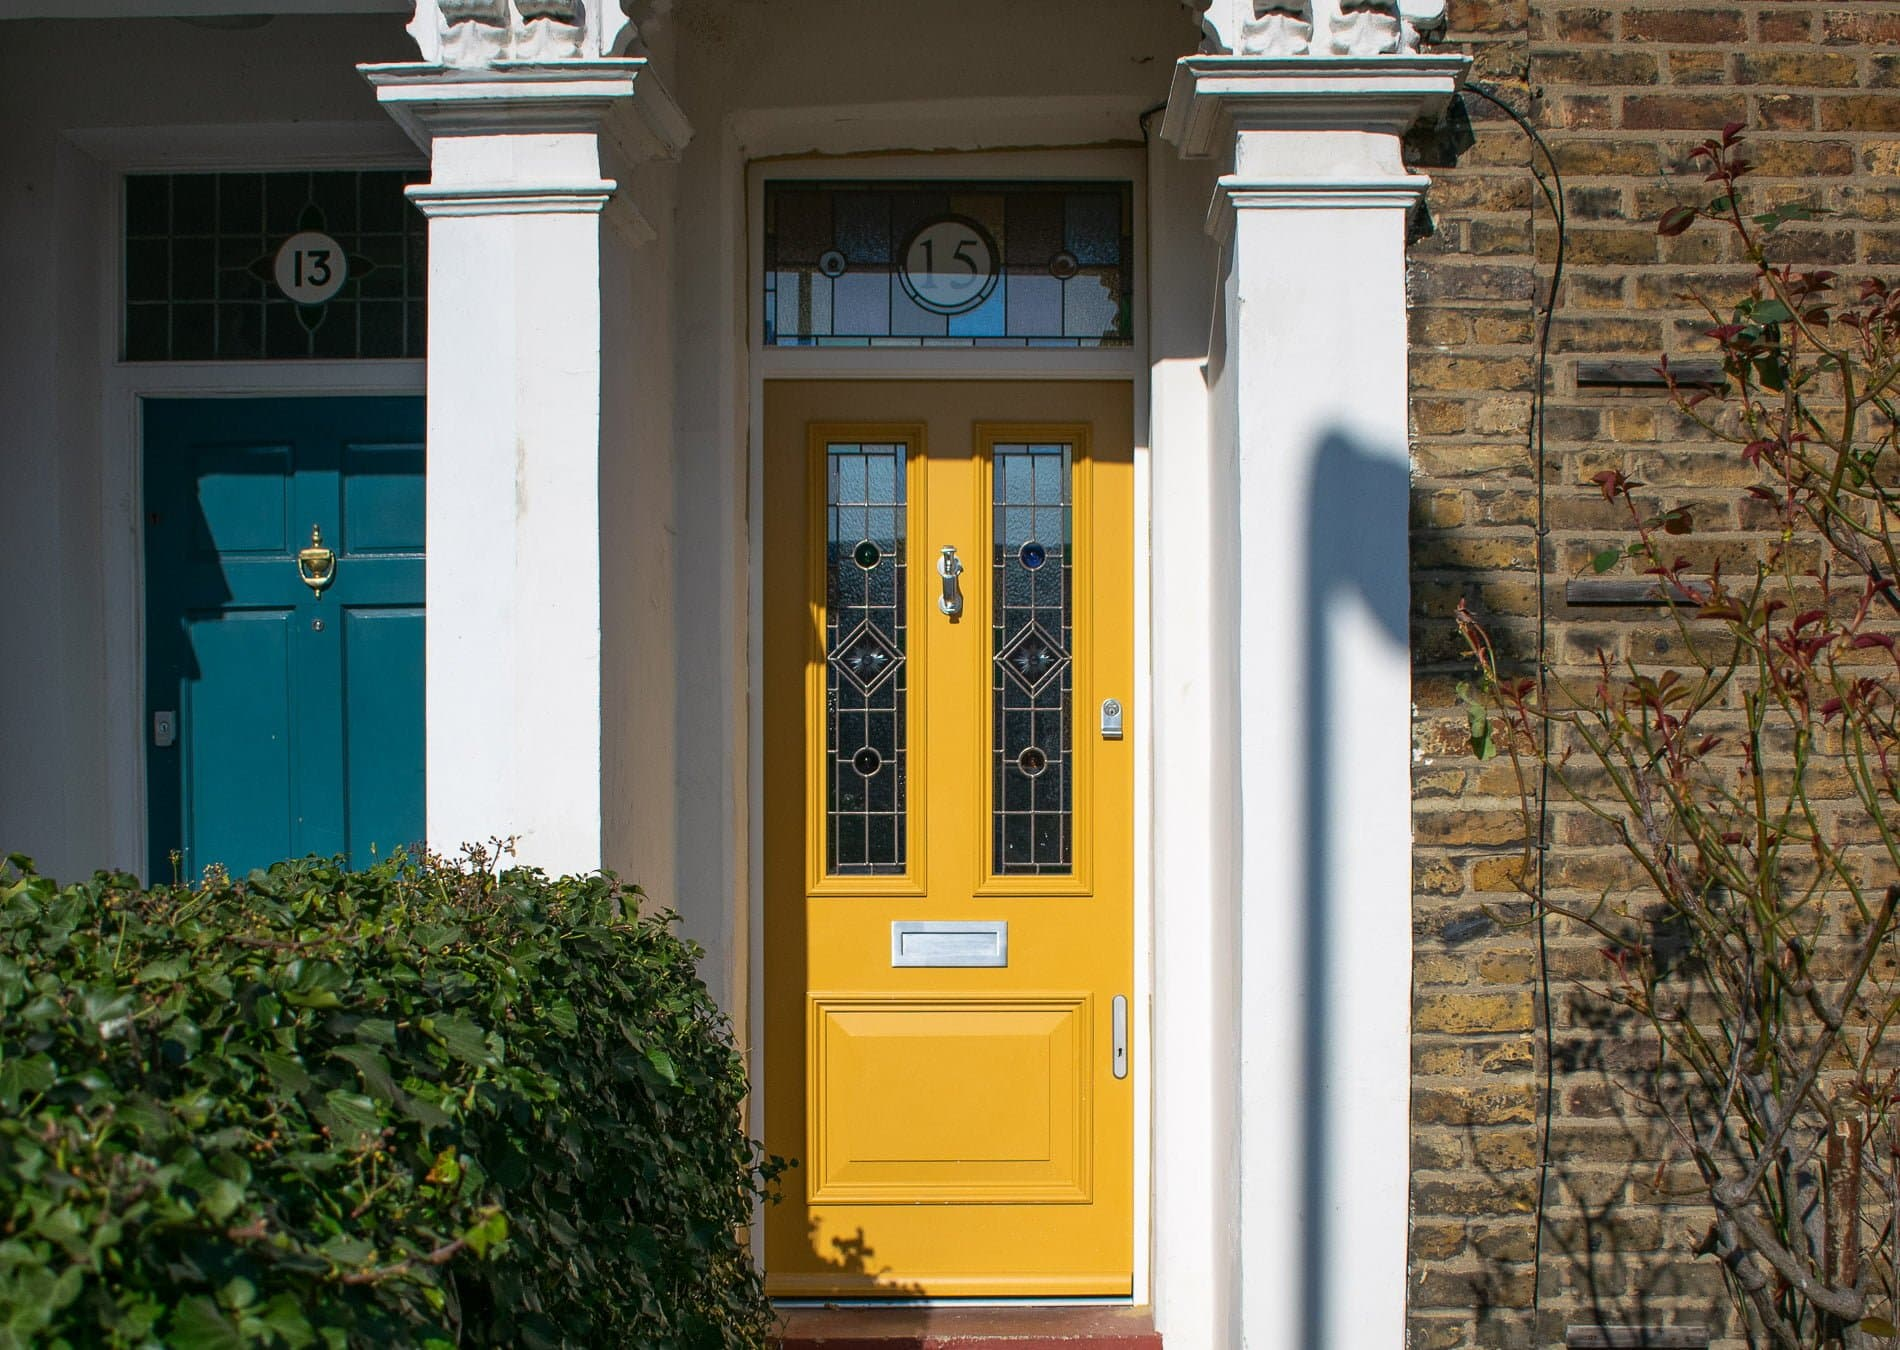 Victorian front door and fanlight frame. Door spray painted bright yellow. Stained glass in door and fanlight.